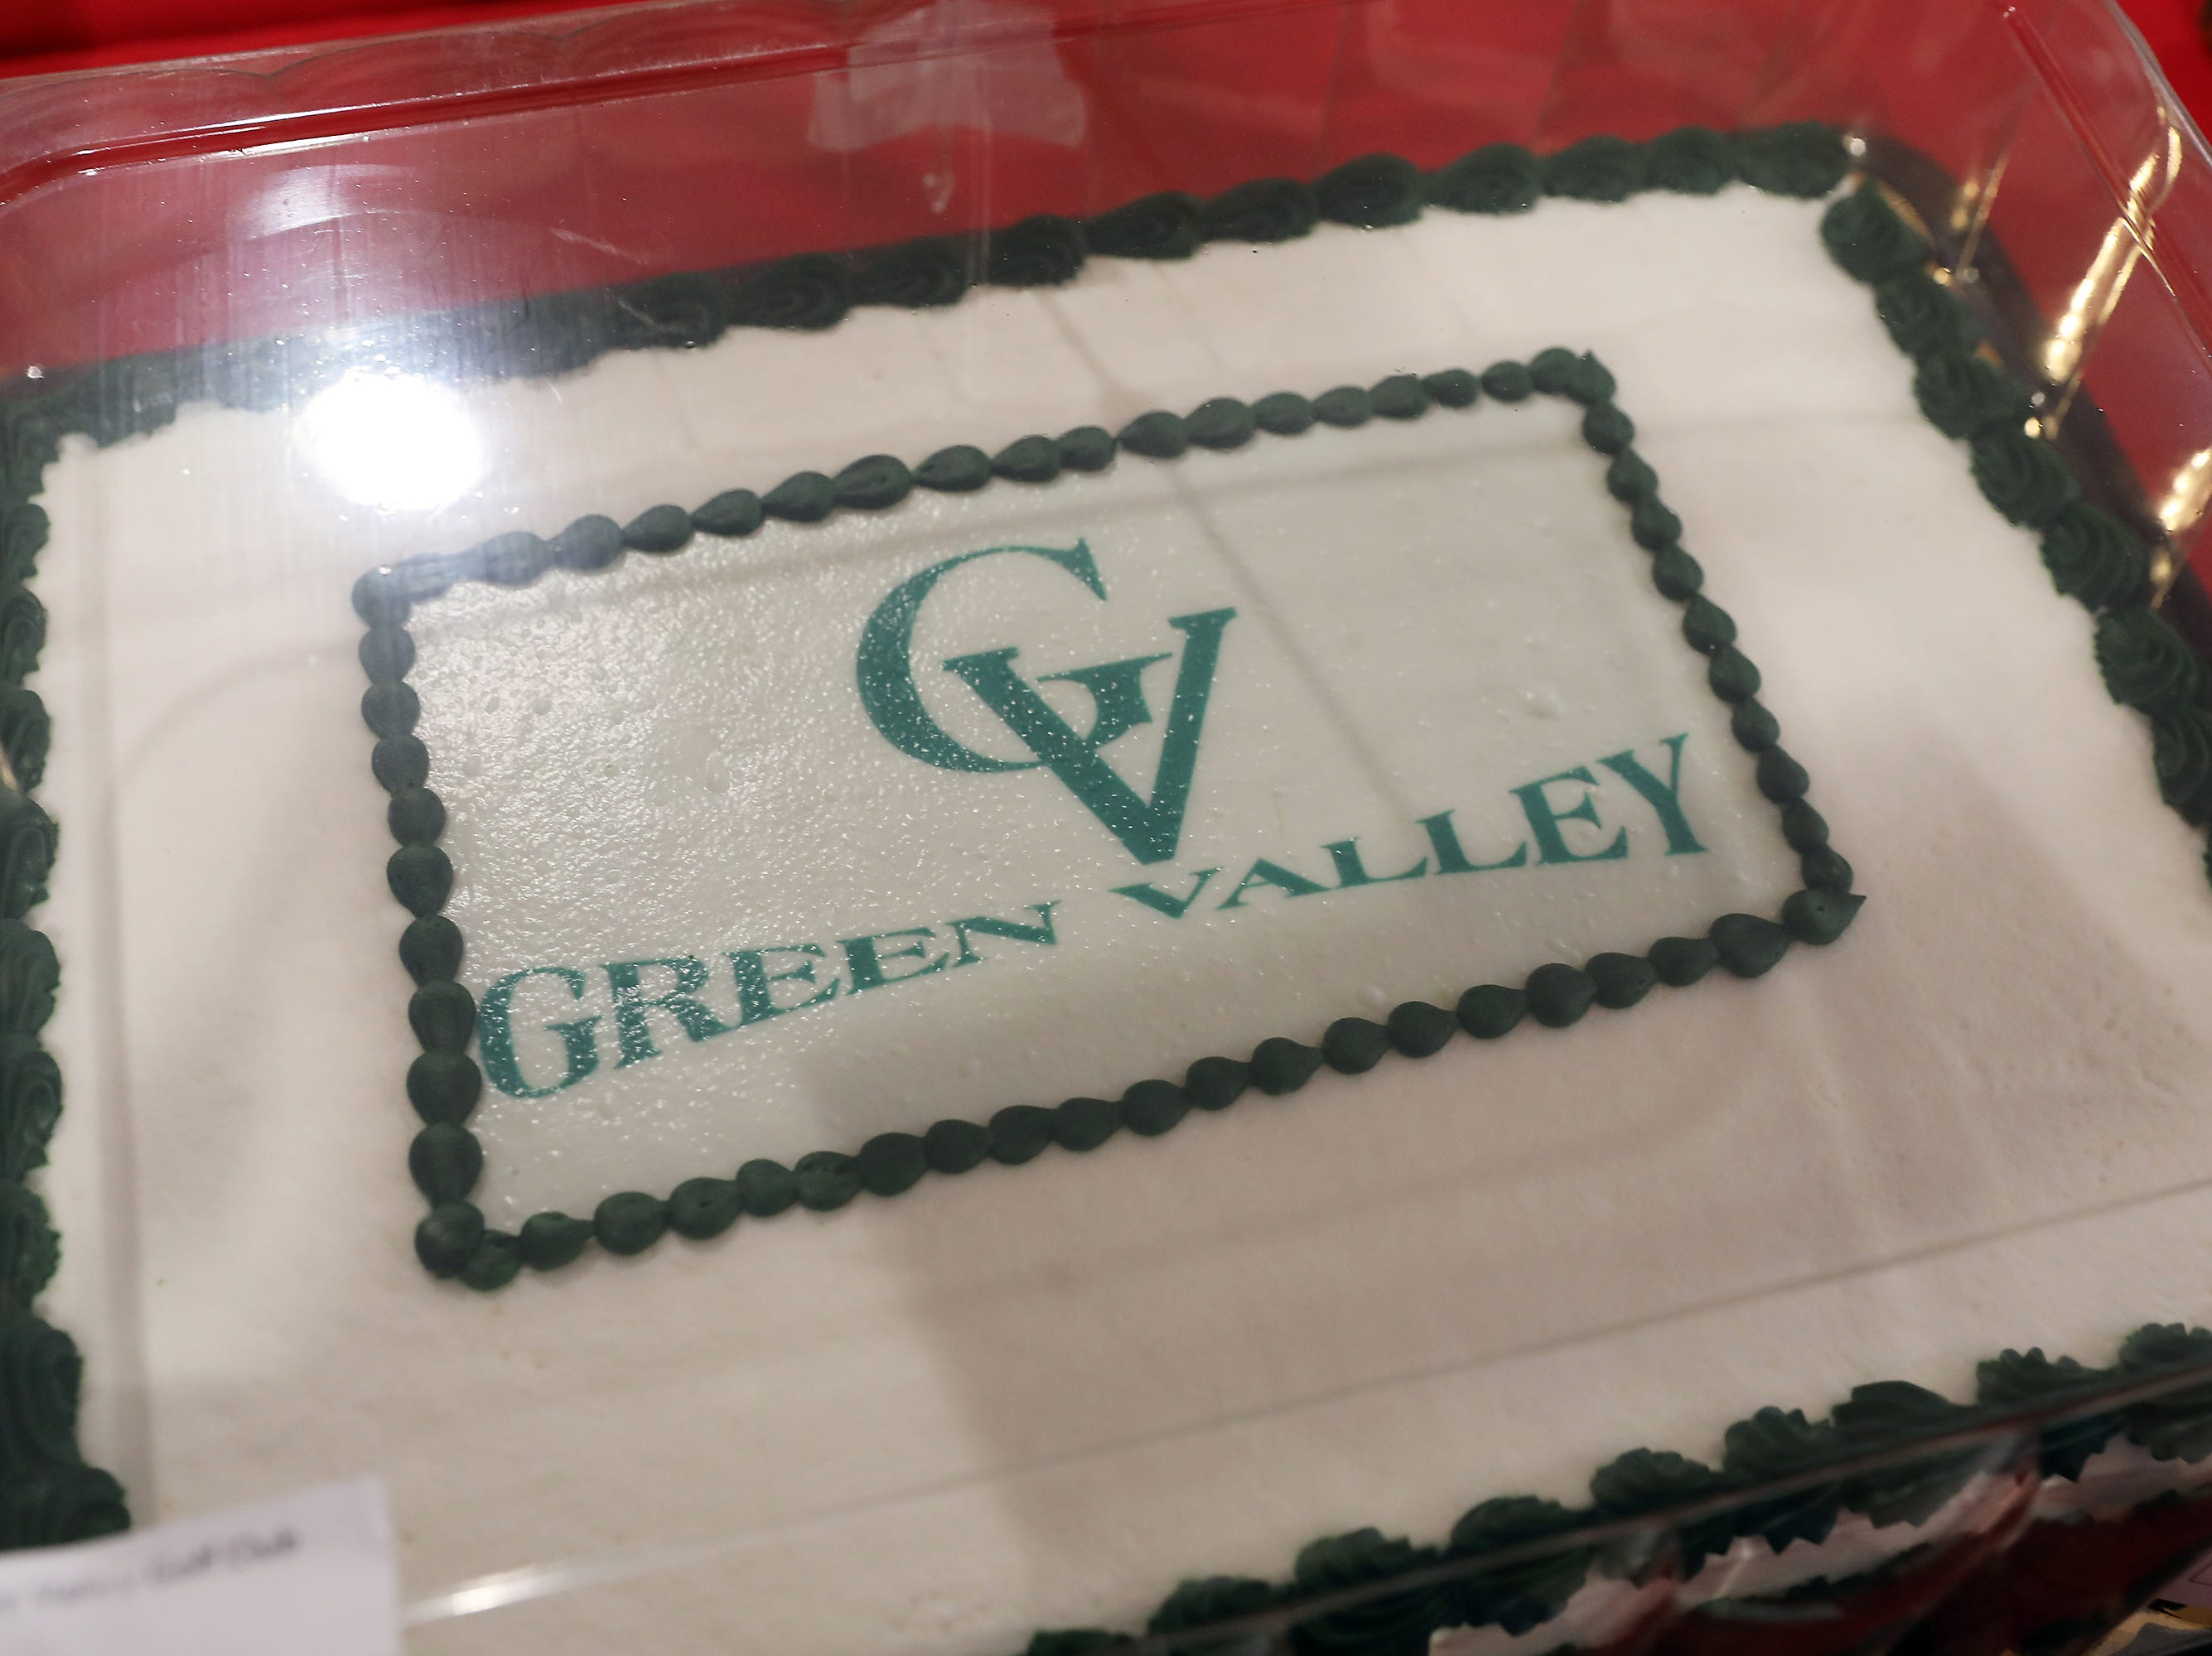 3 P.M. Friday cake 350 Green Valley Golf Club - 4 rounds with cart, lunch, sleeve of balls; $125